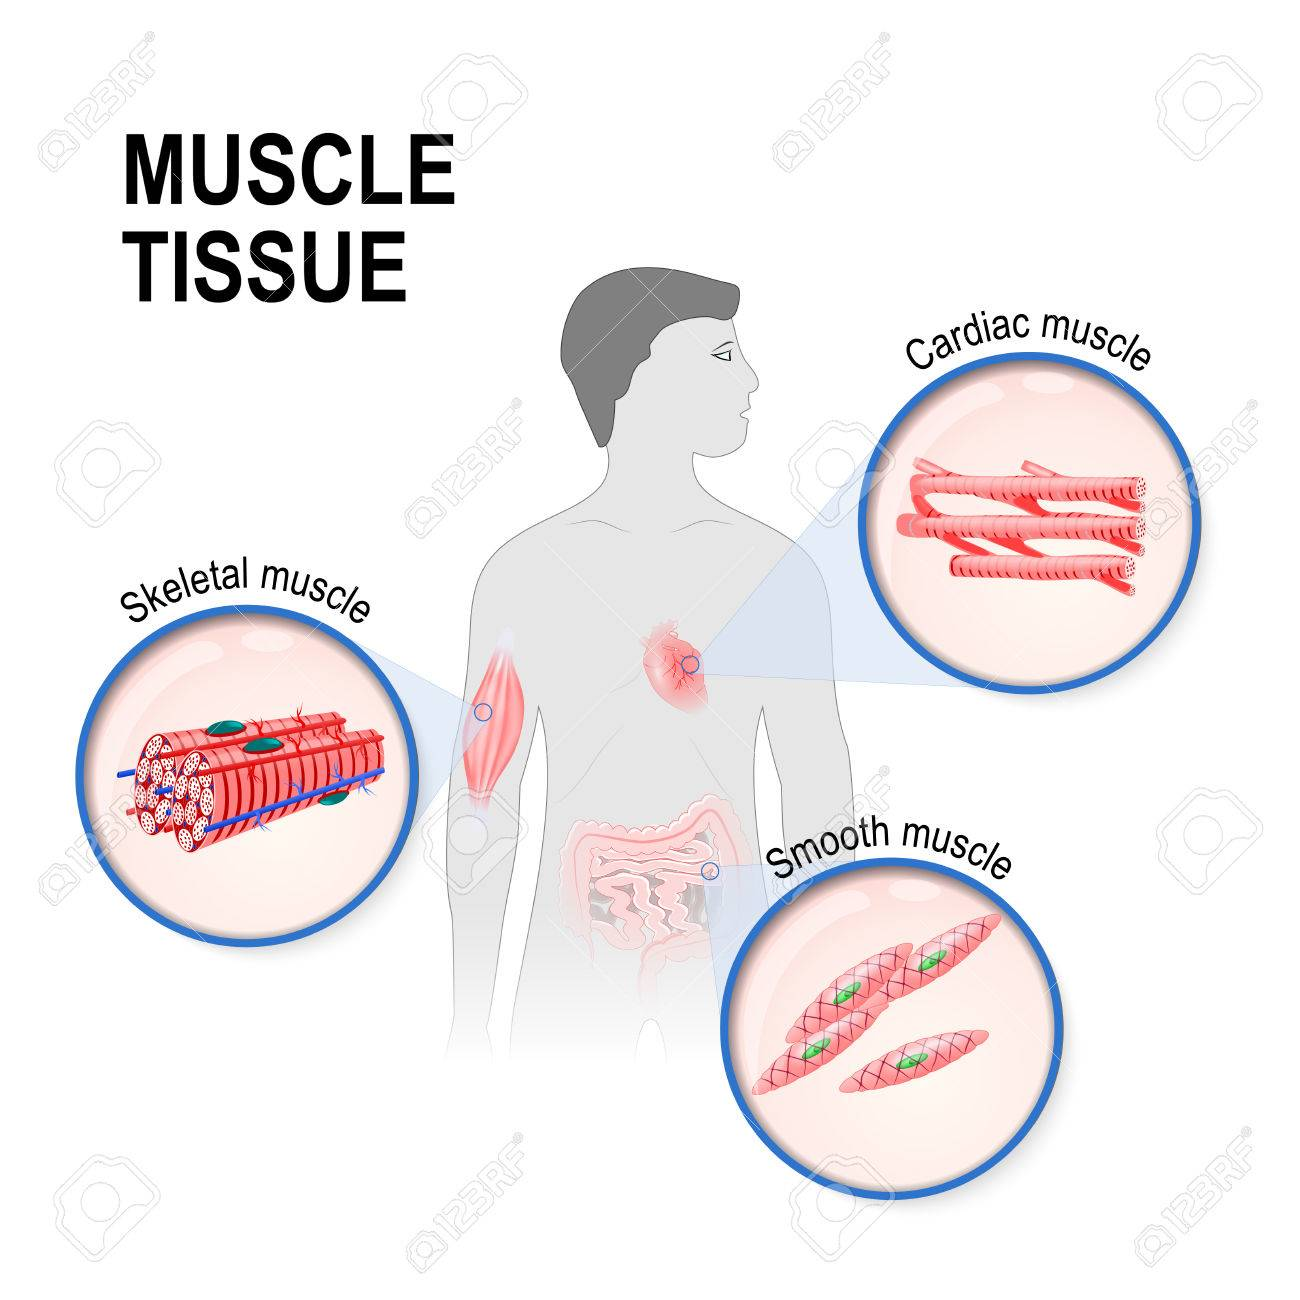 Types Of Muscle Tissue Skeletal Smooth And Cardiac Muscle